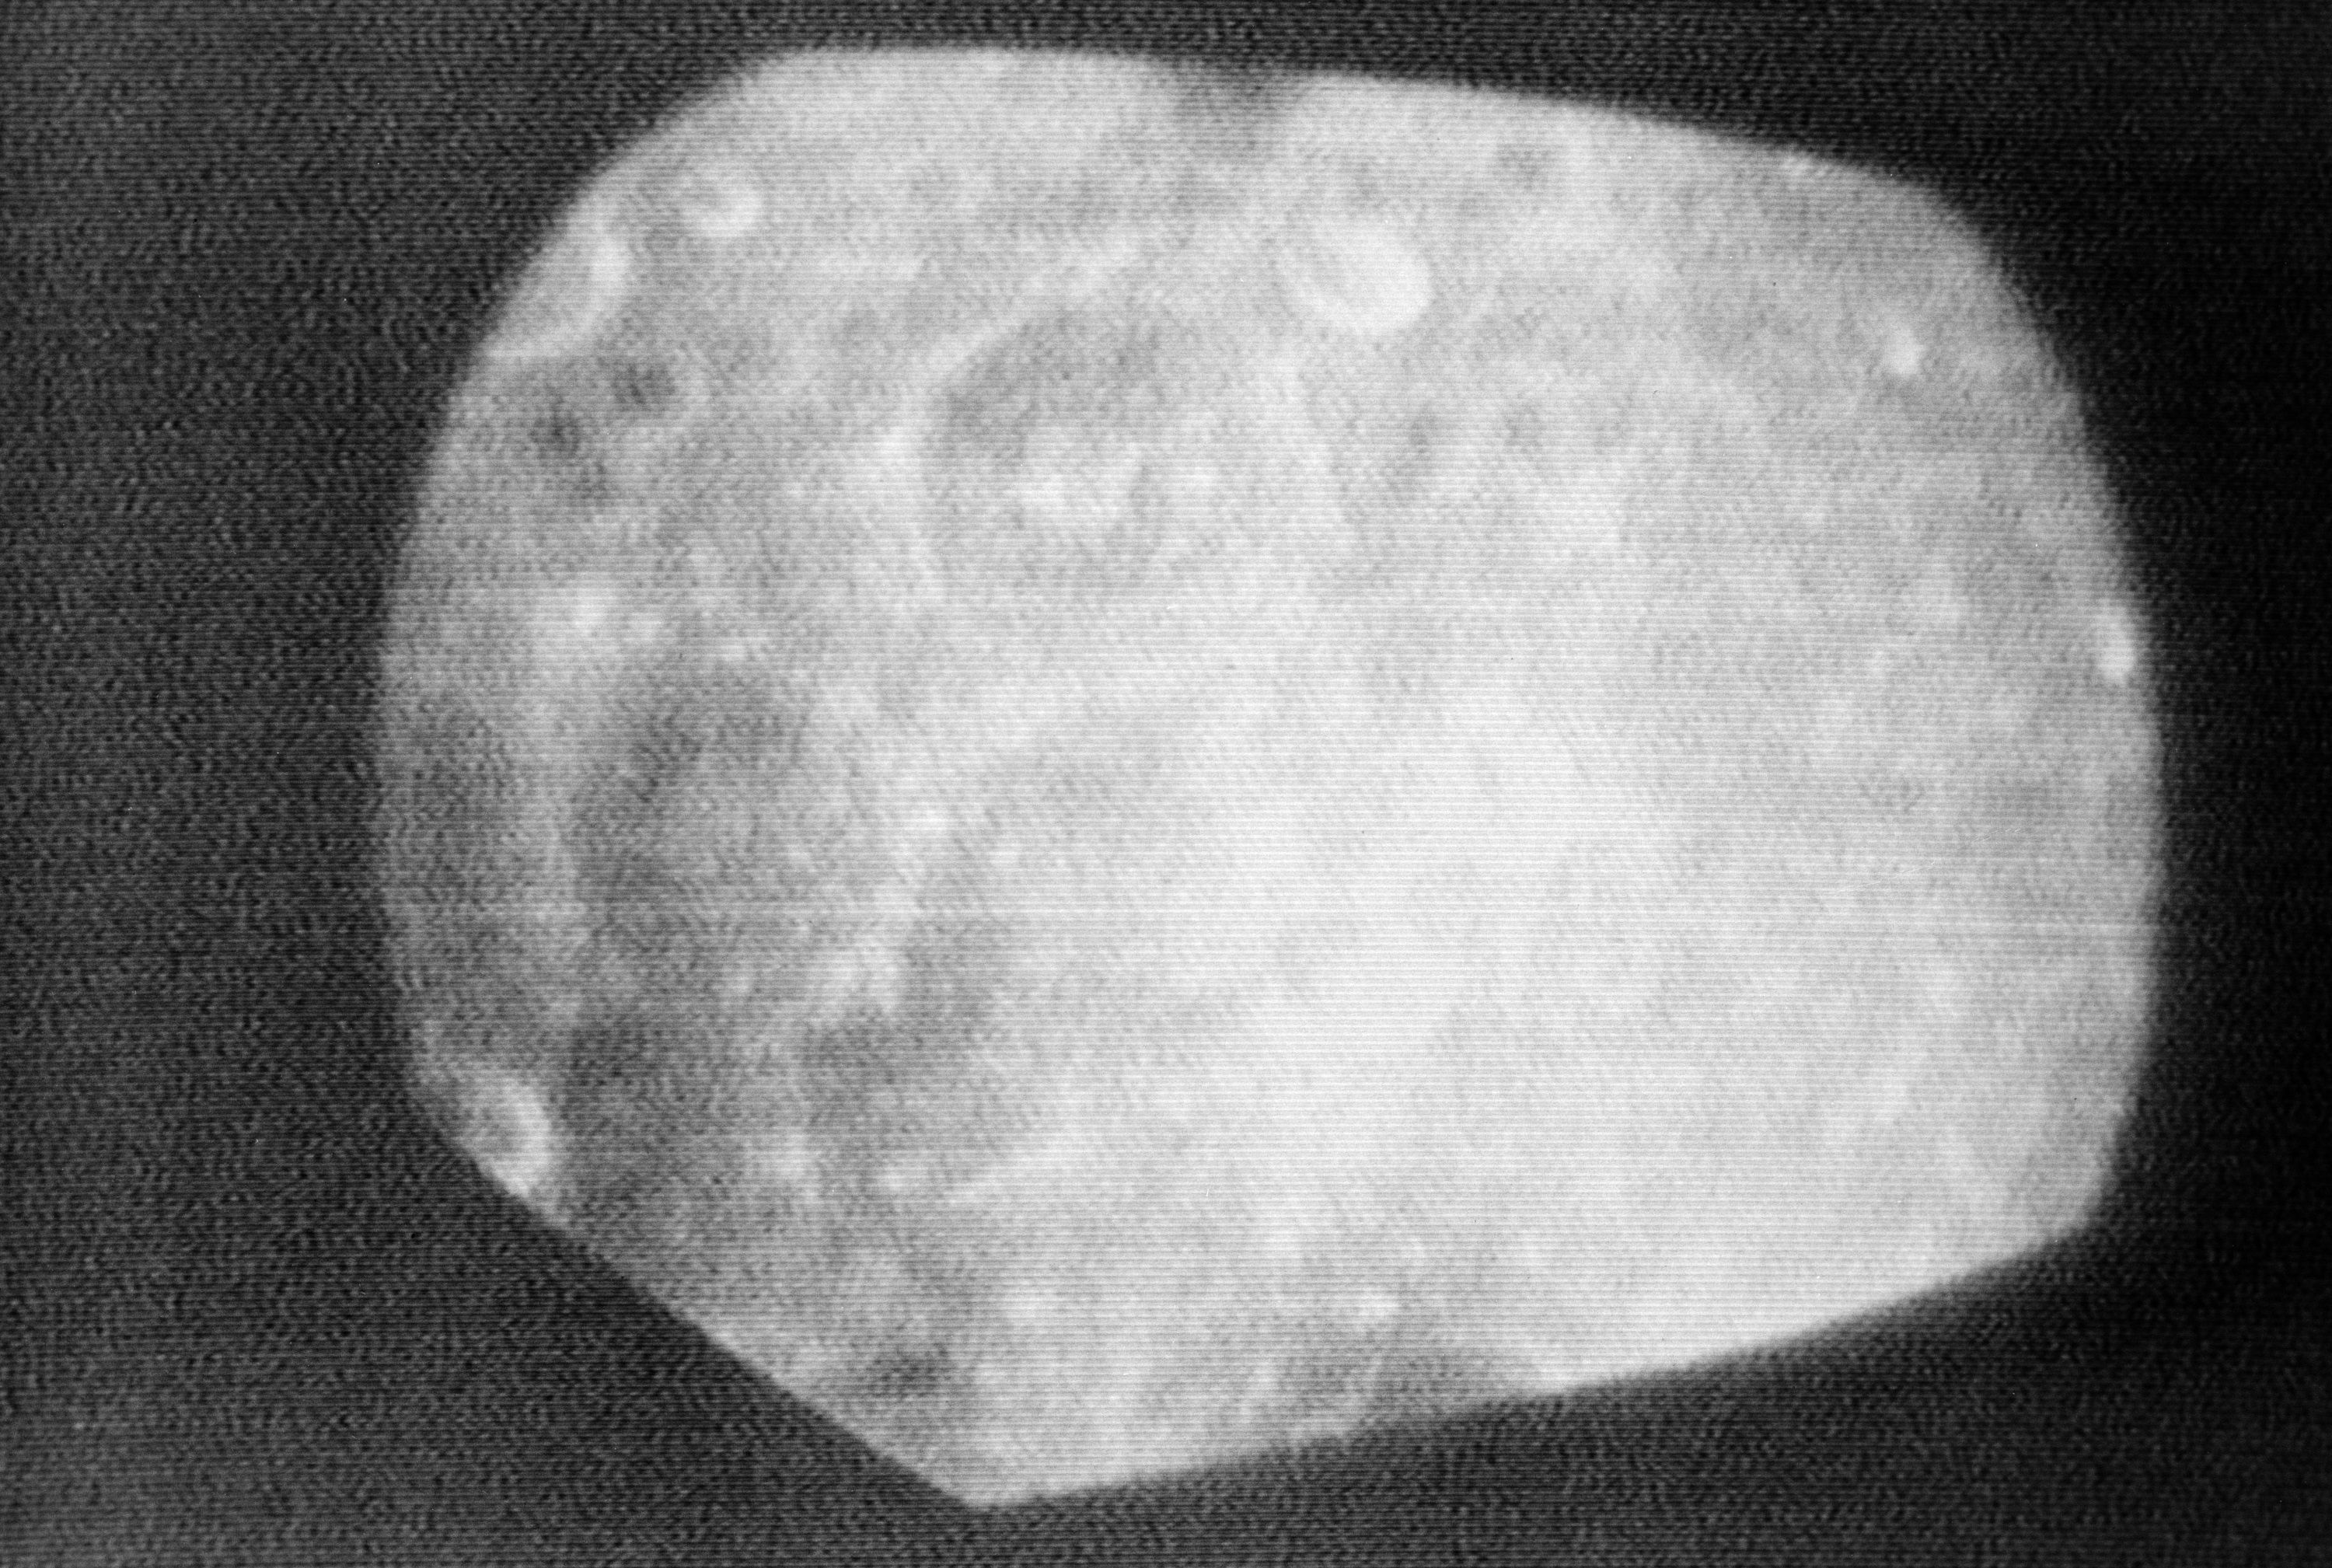 Grainy image of the lunar surface as seen from Apollo 8